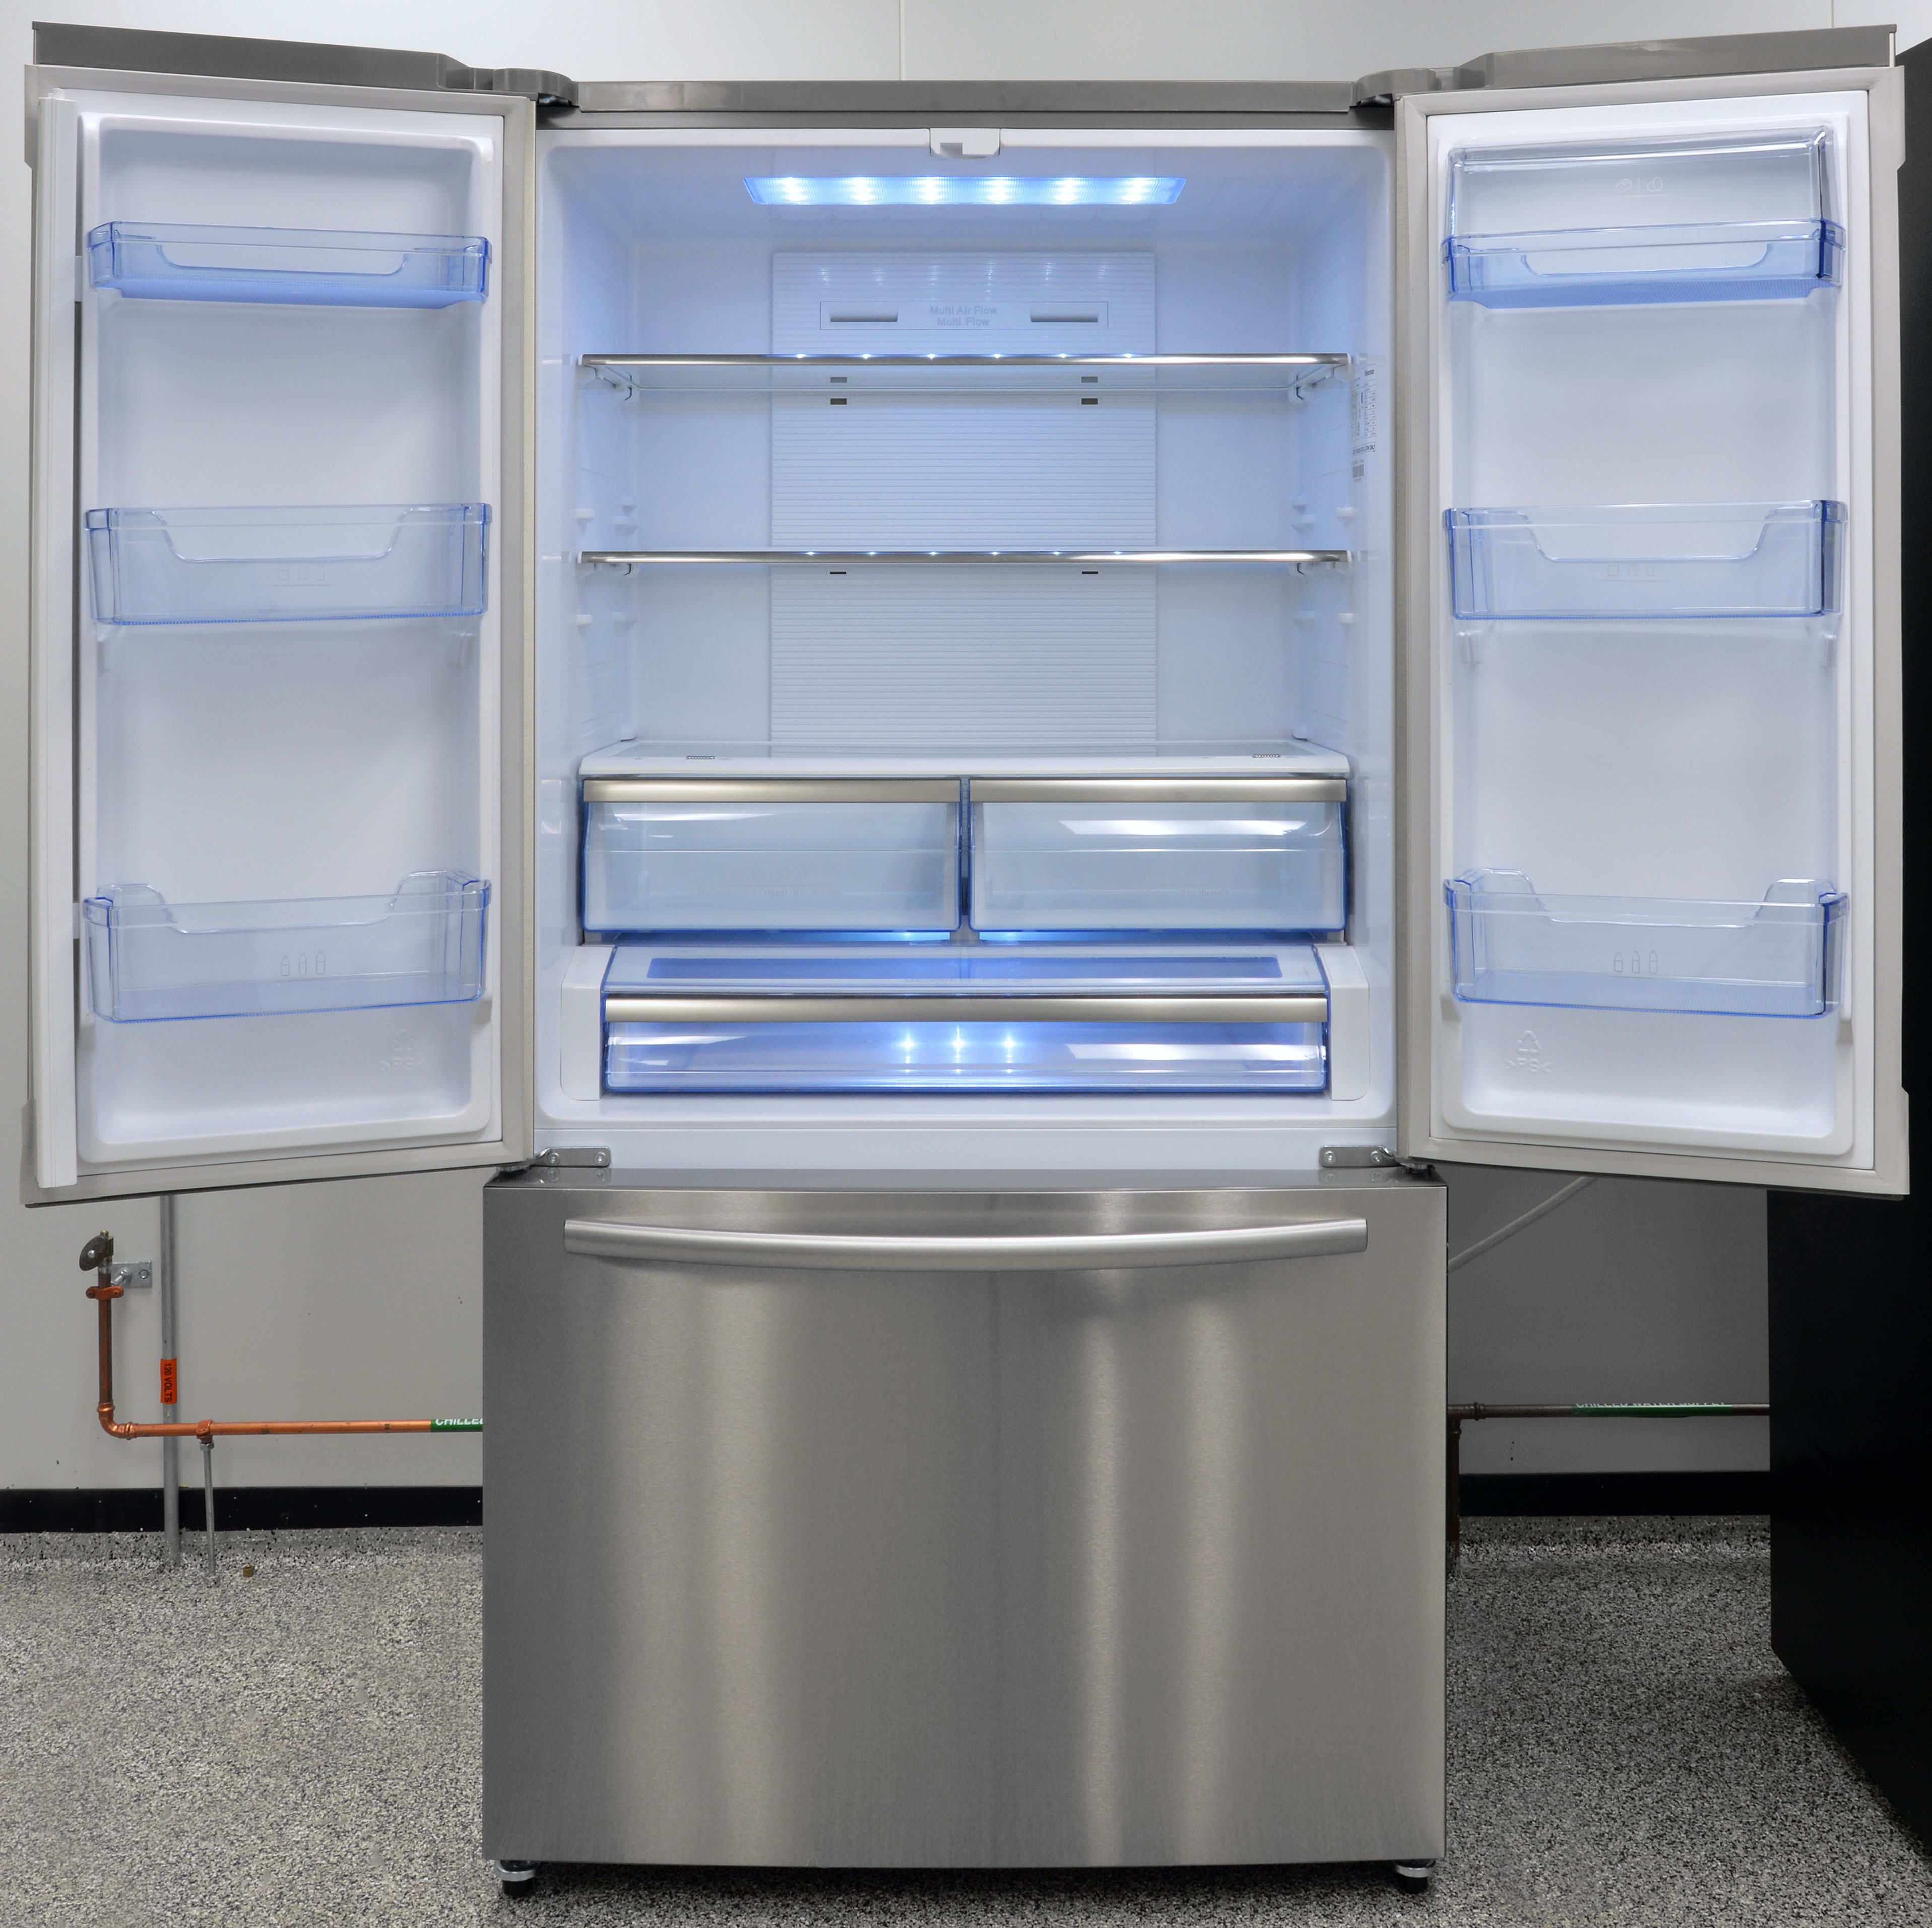 freezer under back freezers coolers refrigerators products product hussmann and display countertop category new retailer counter bar of refrigerator refrigeration true toronto